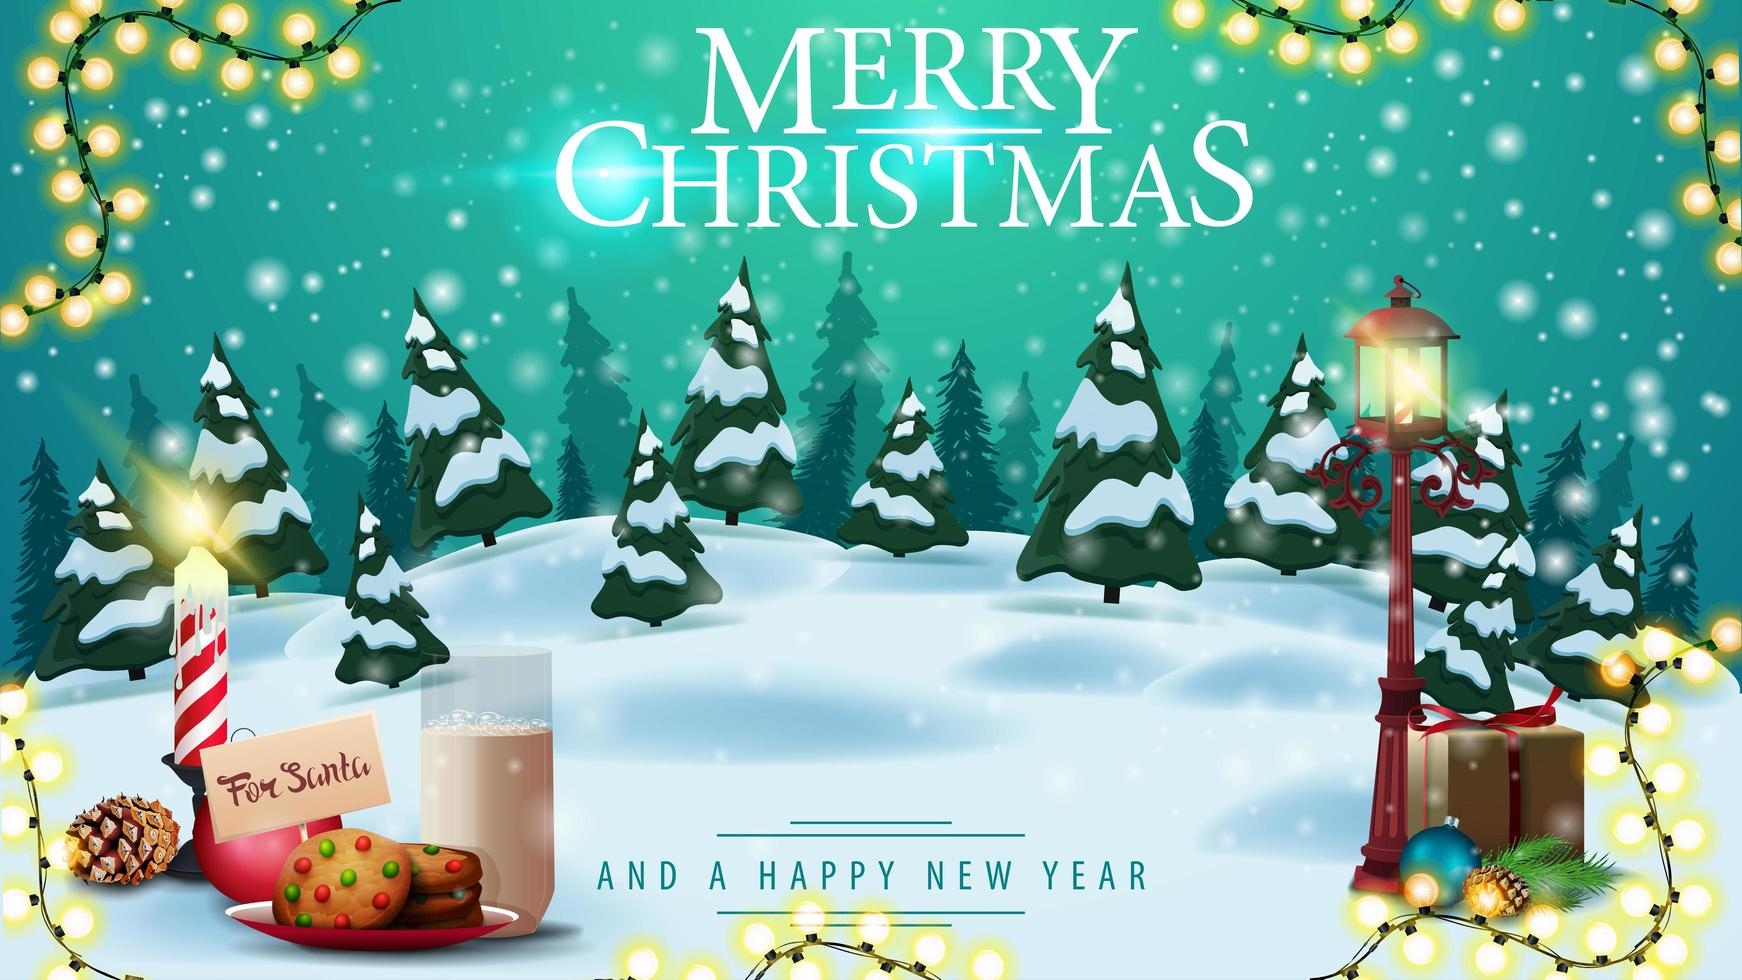 Merry Christmas, postcard with winter landscape, blue sky, snowfall, pole lantern, and cookies with a glass of milk for Santa Claus vector